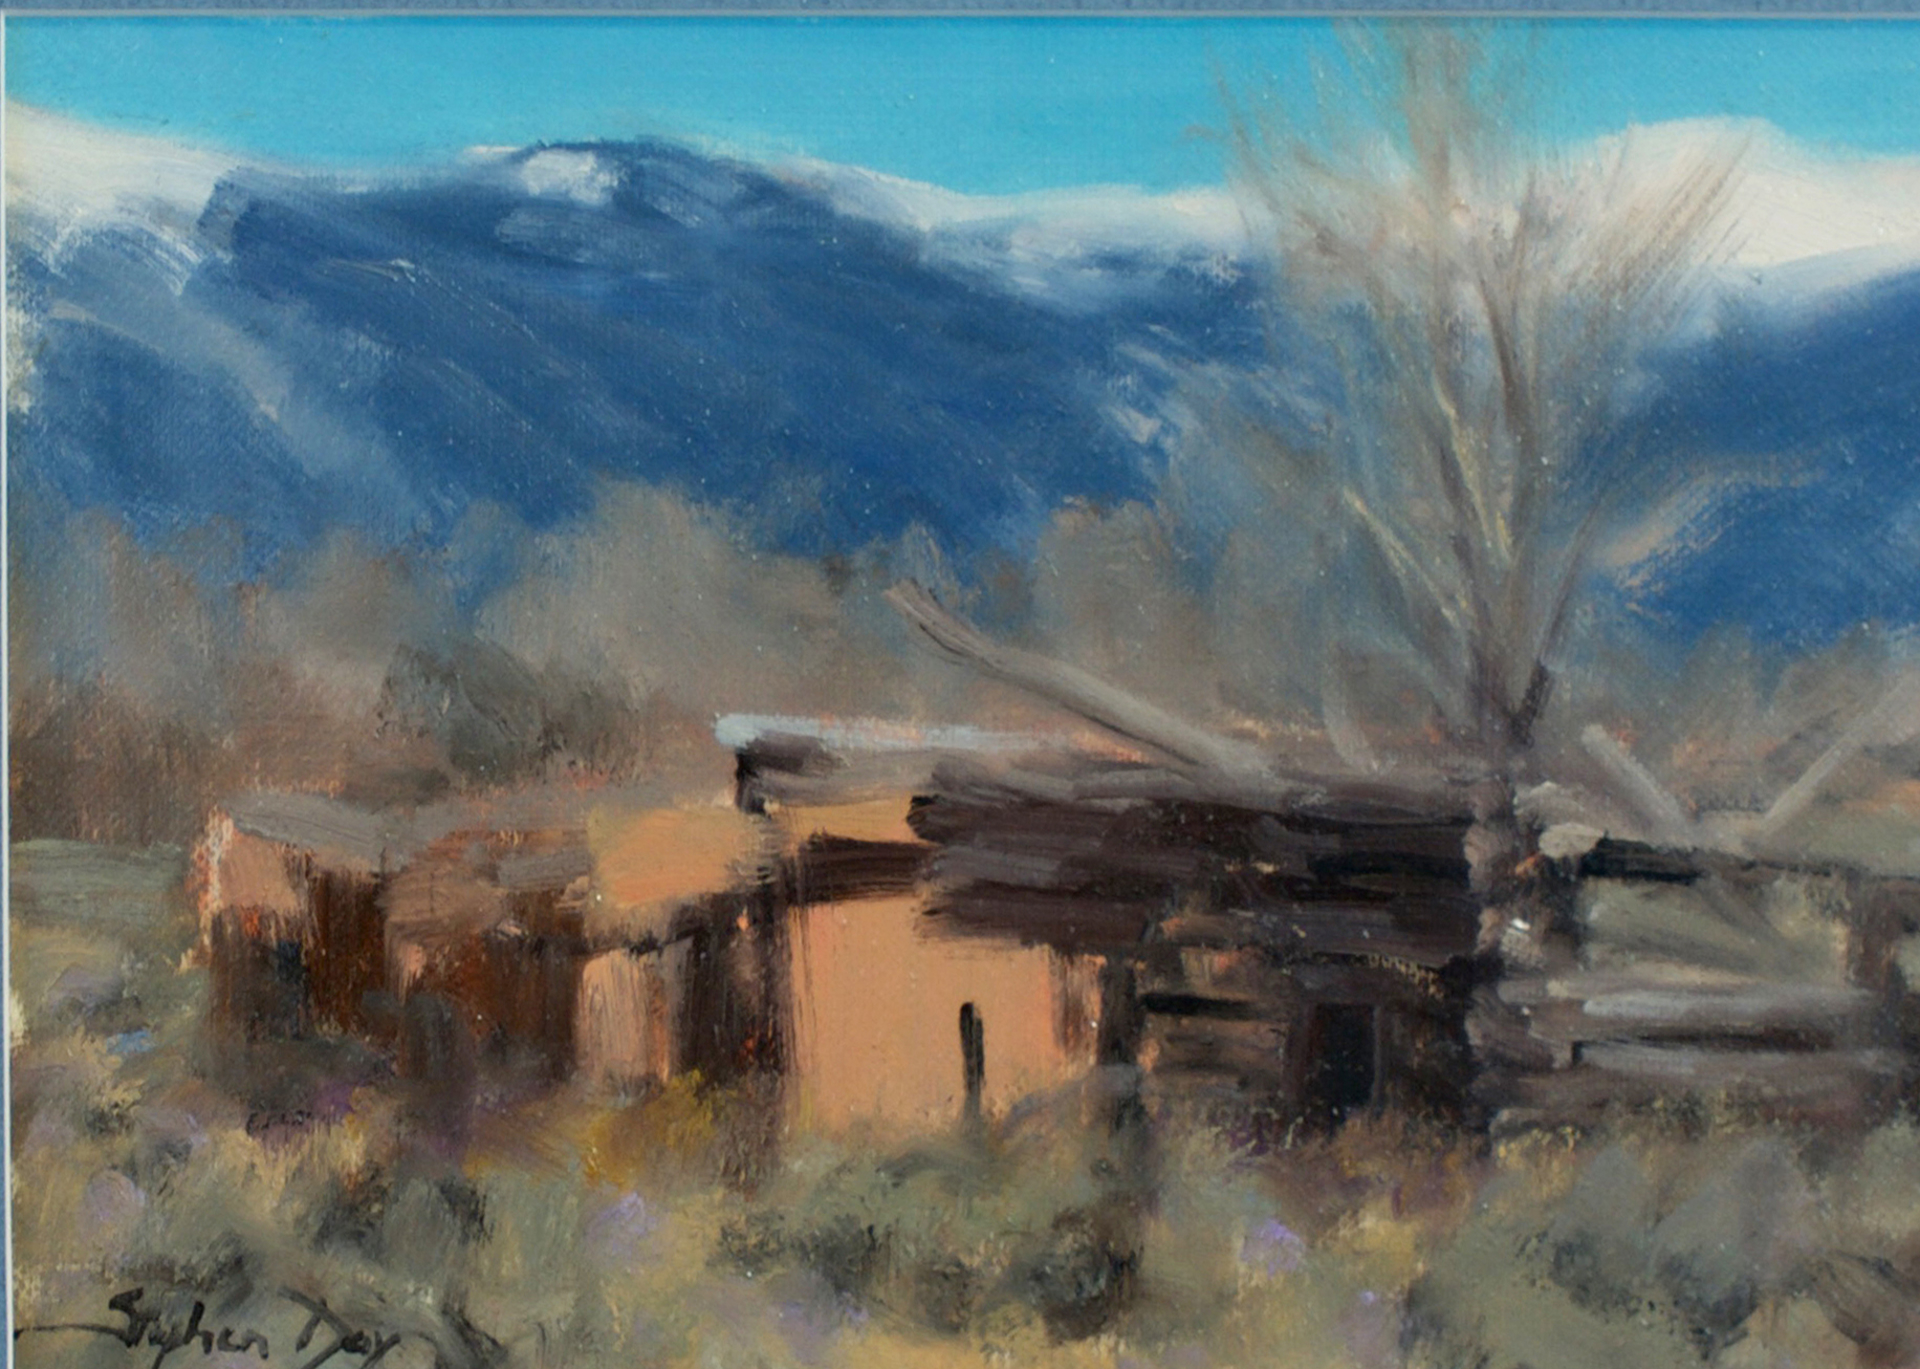 Old Adobe Near Taos by Stephen Day